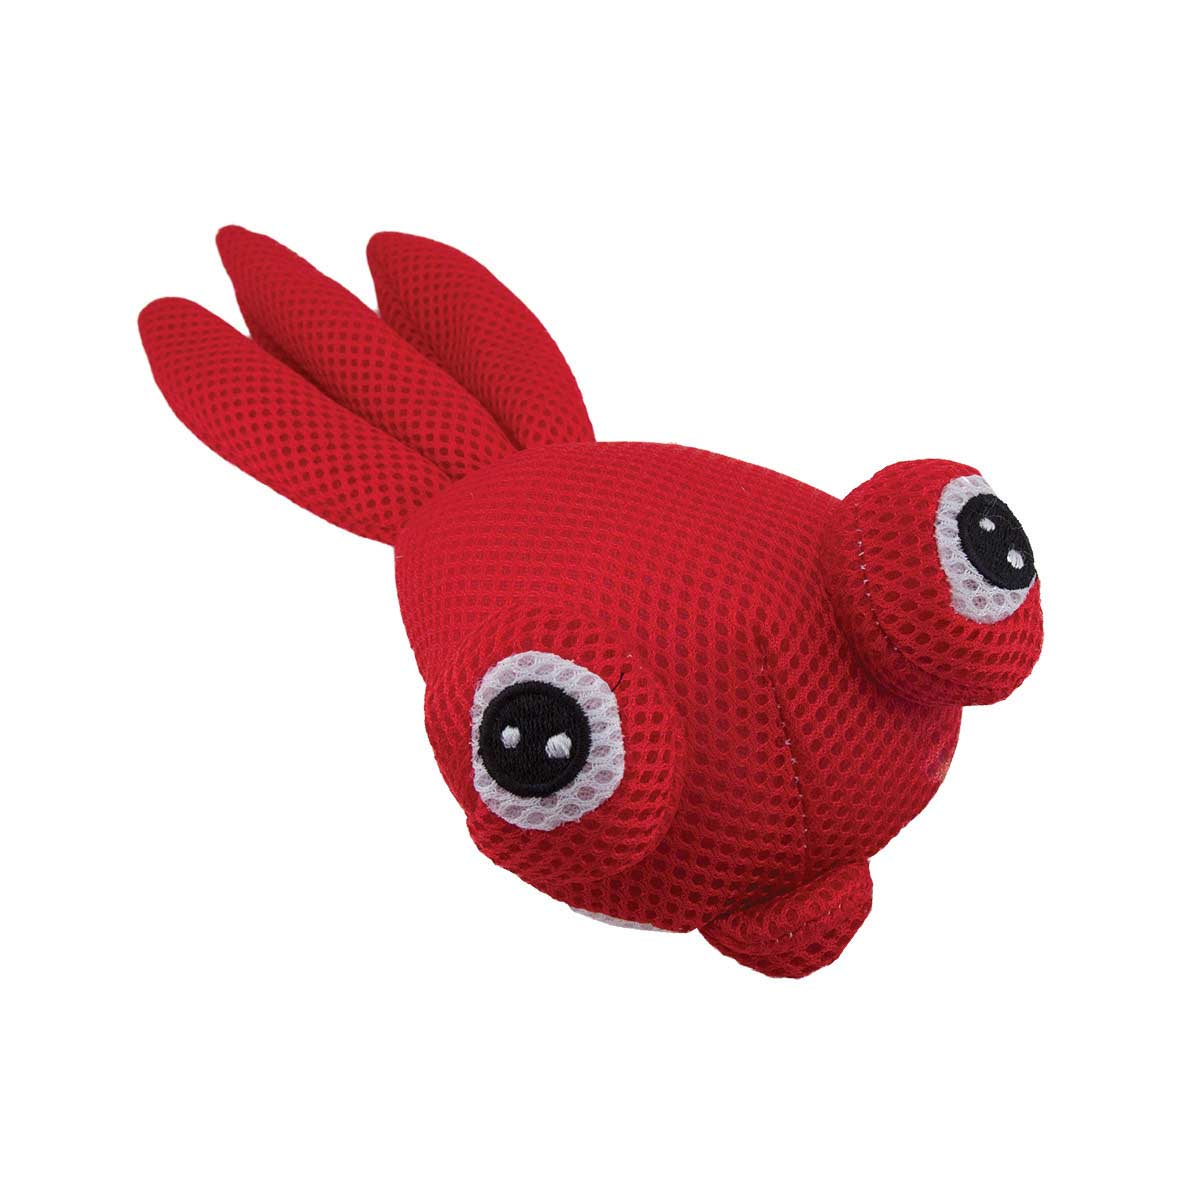 Dawgeee Toy Red Plush Goldfish - 11 inch Dog Toys